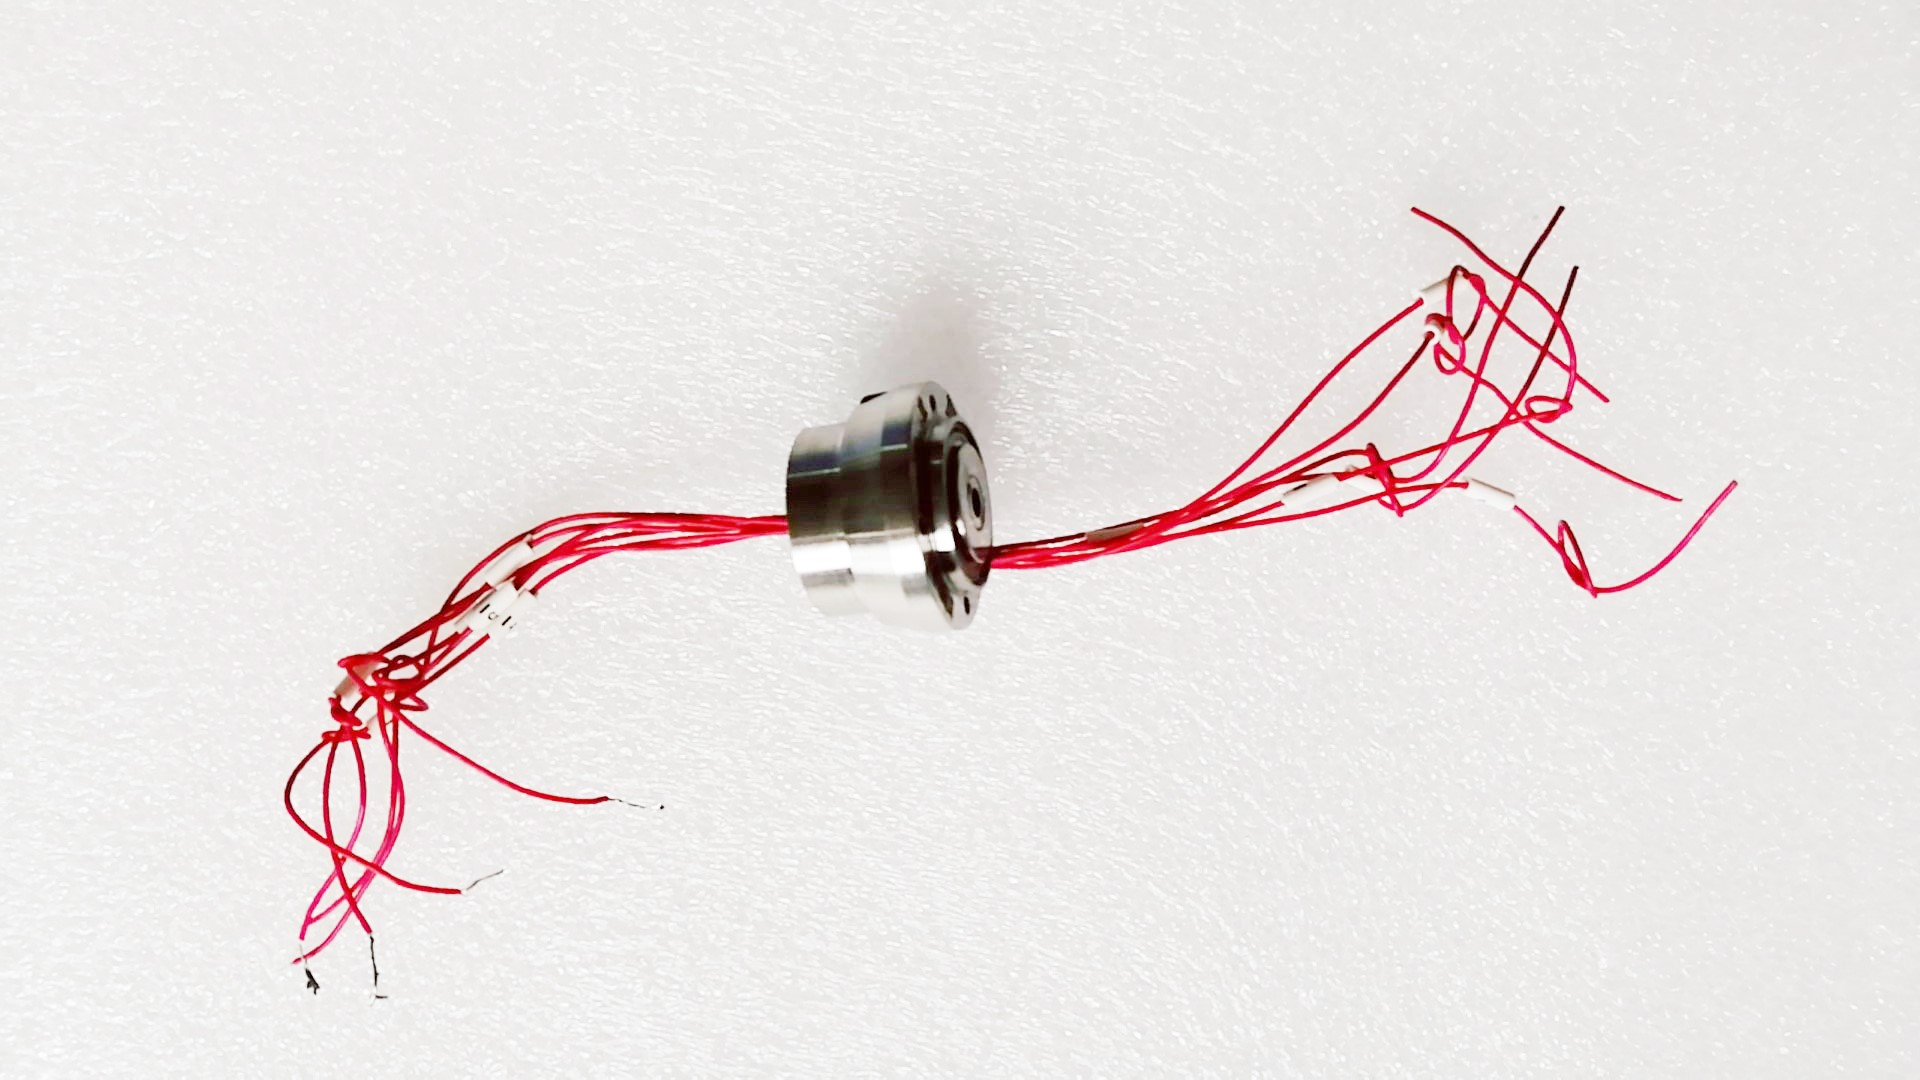 miniature slip ring DHS016-6-1A-002 (20.597g)